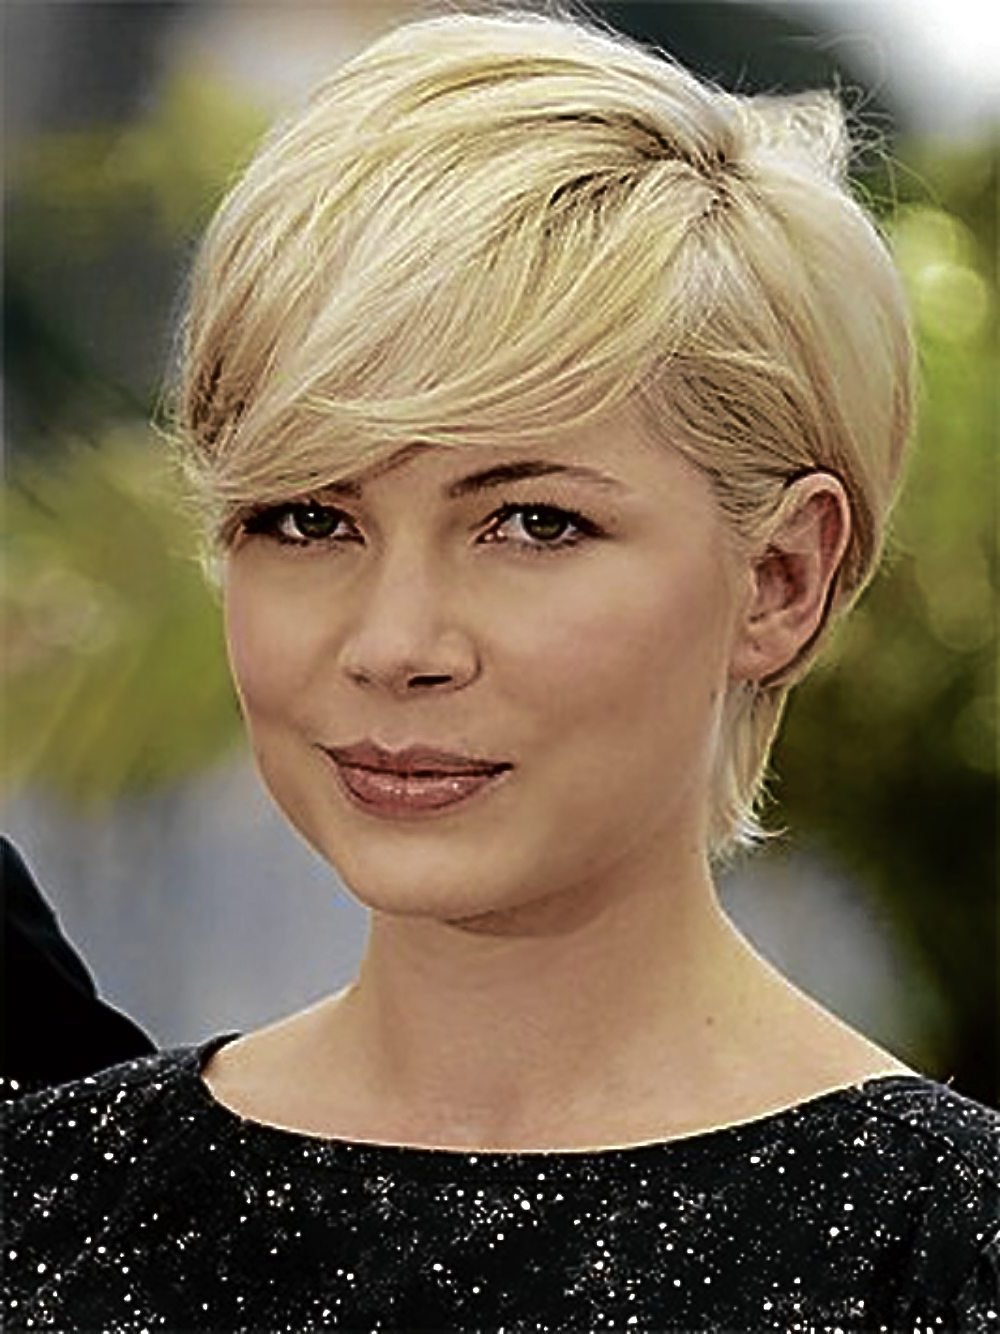 5 Things To Remember Before Getting That Pixie | Inquirer Lifestyle With Straight Pixie Hairstyles For Thick Hair (View 13 of 20)